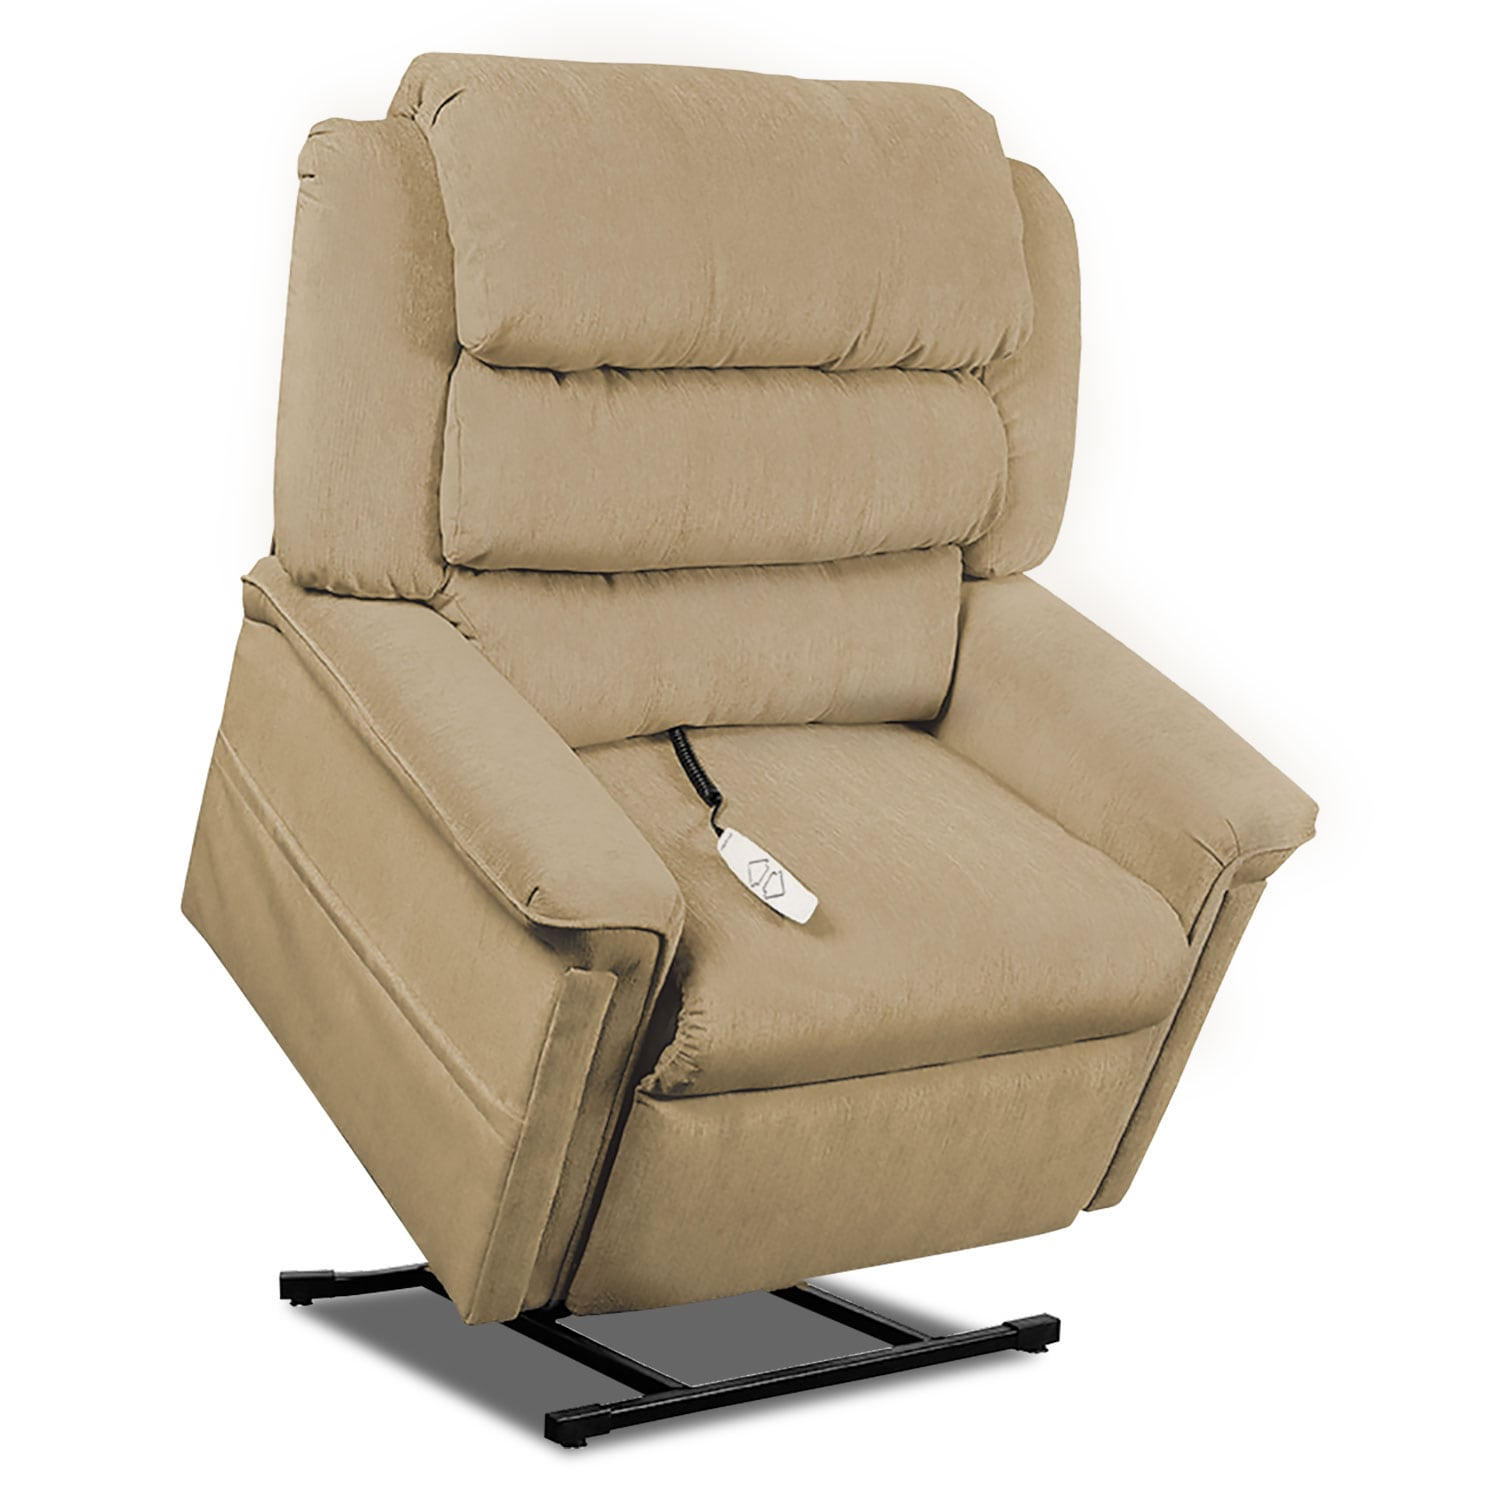 Value City Furniture Recliners: Value City Furniture And Mattresses